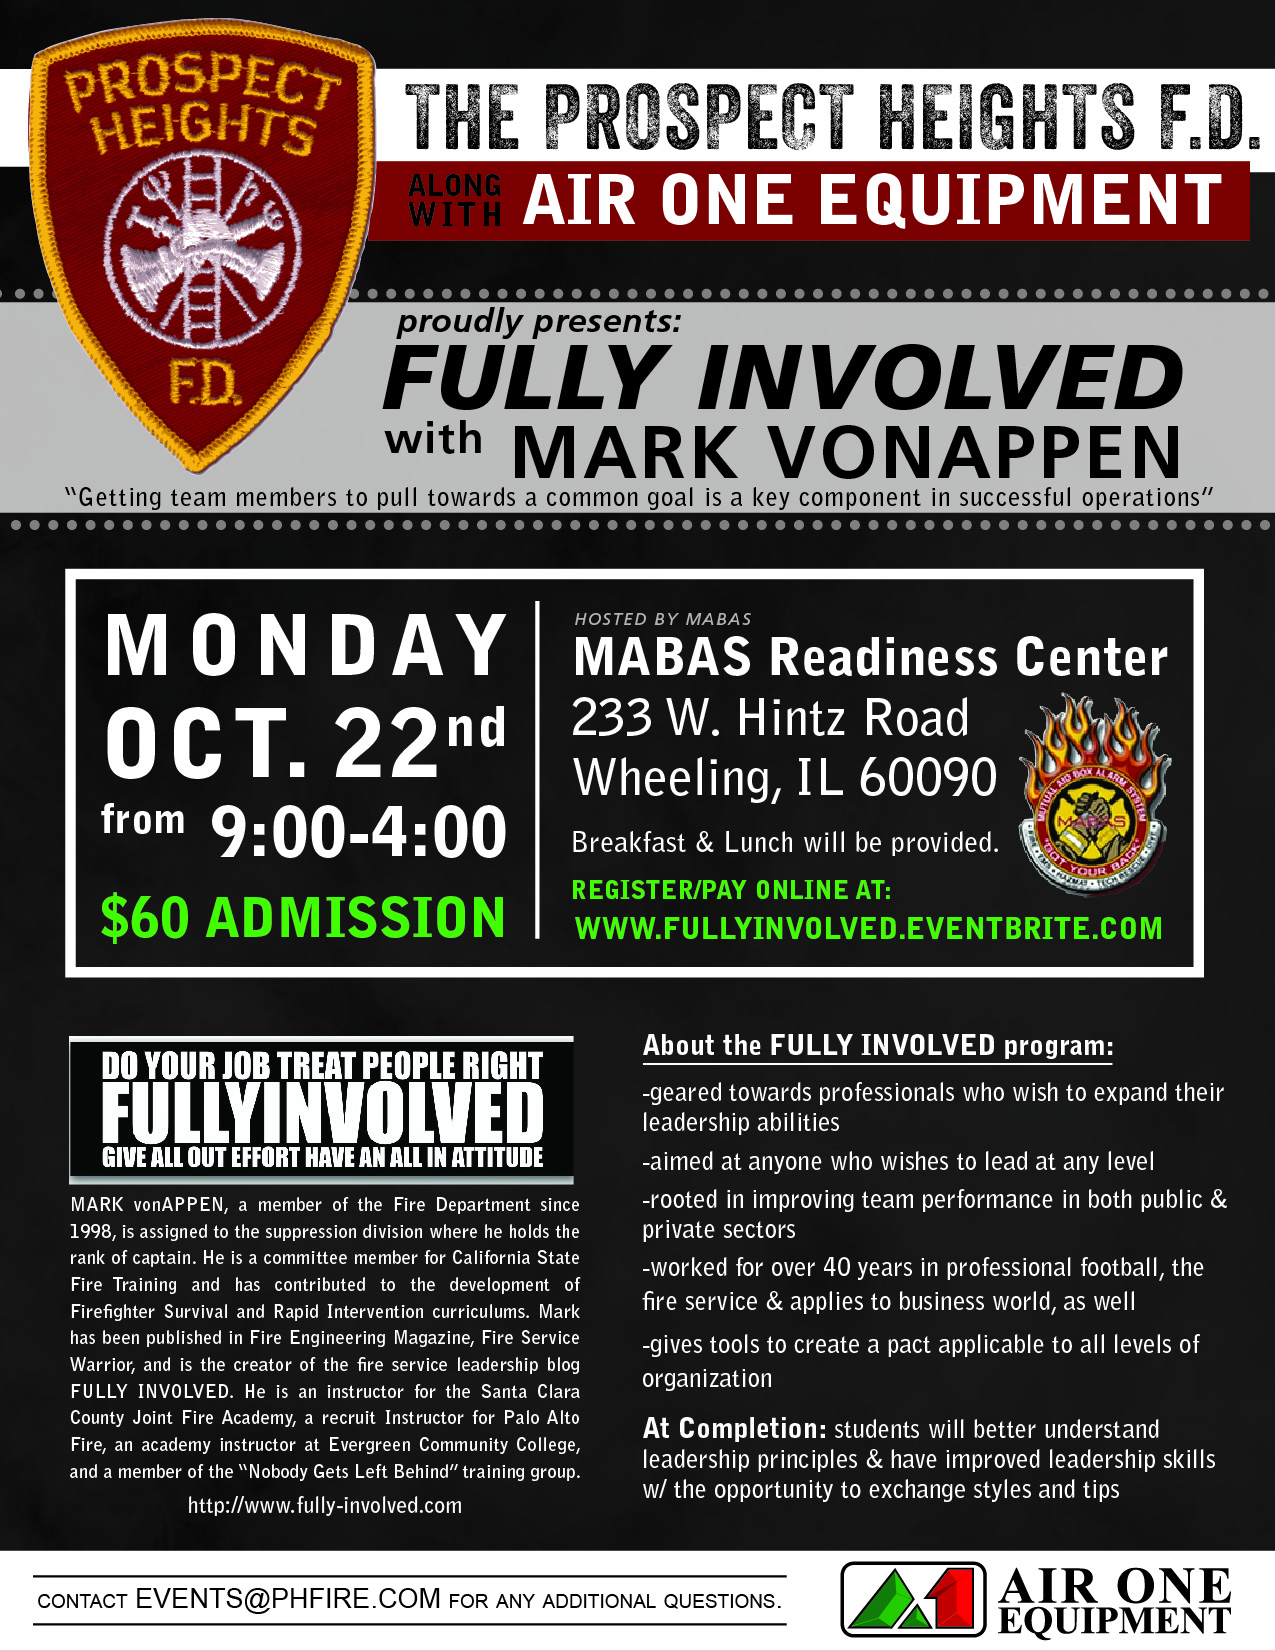 Fully Involved leadership seminar for Firefighters